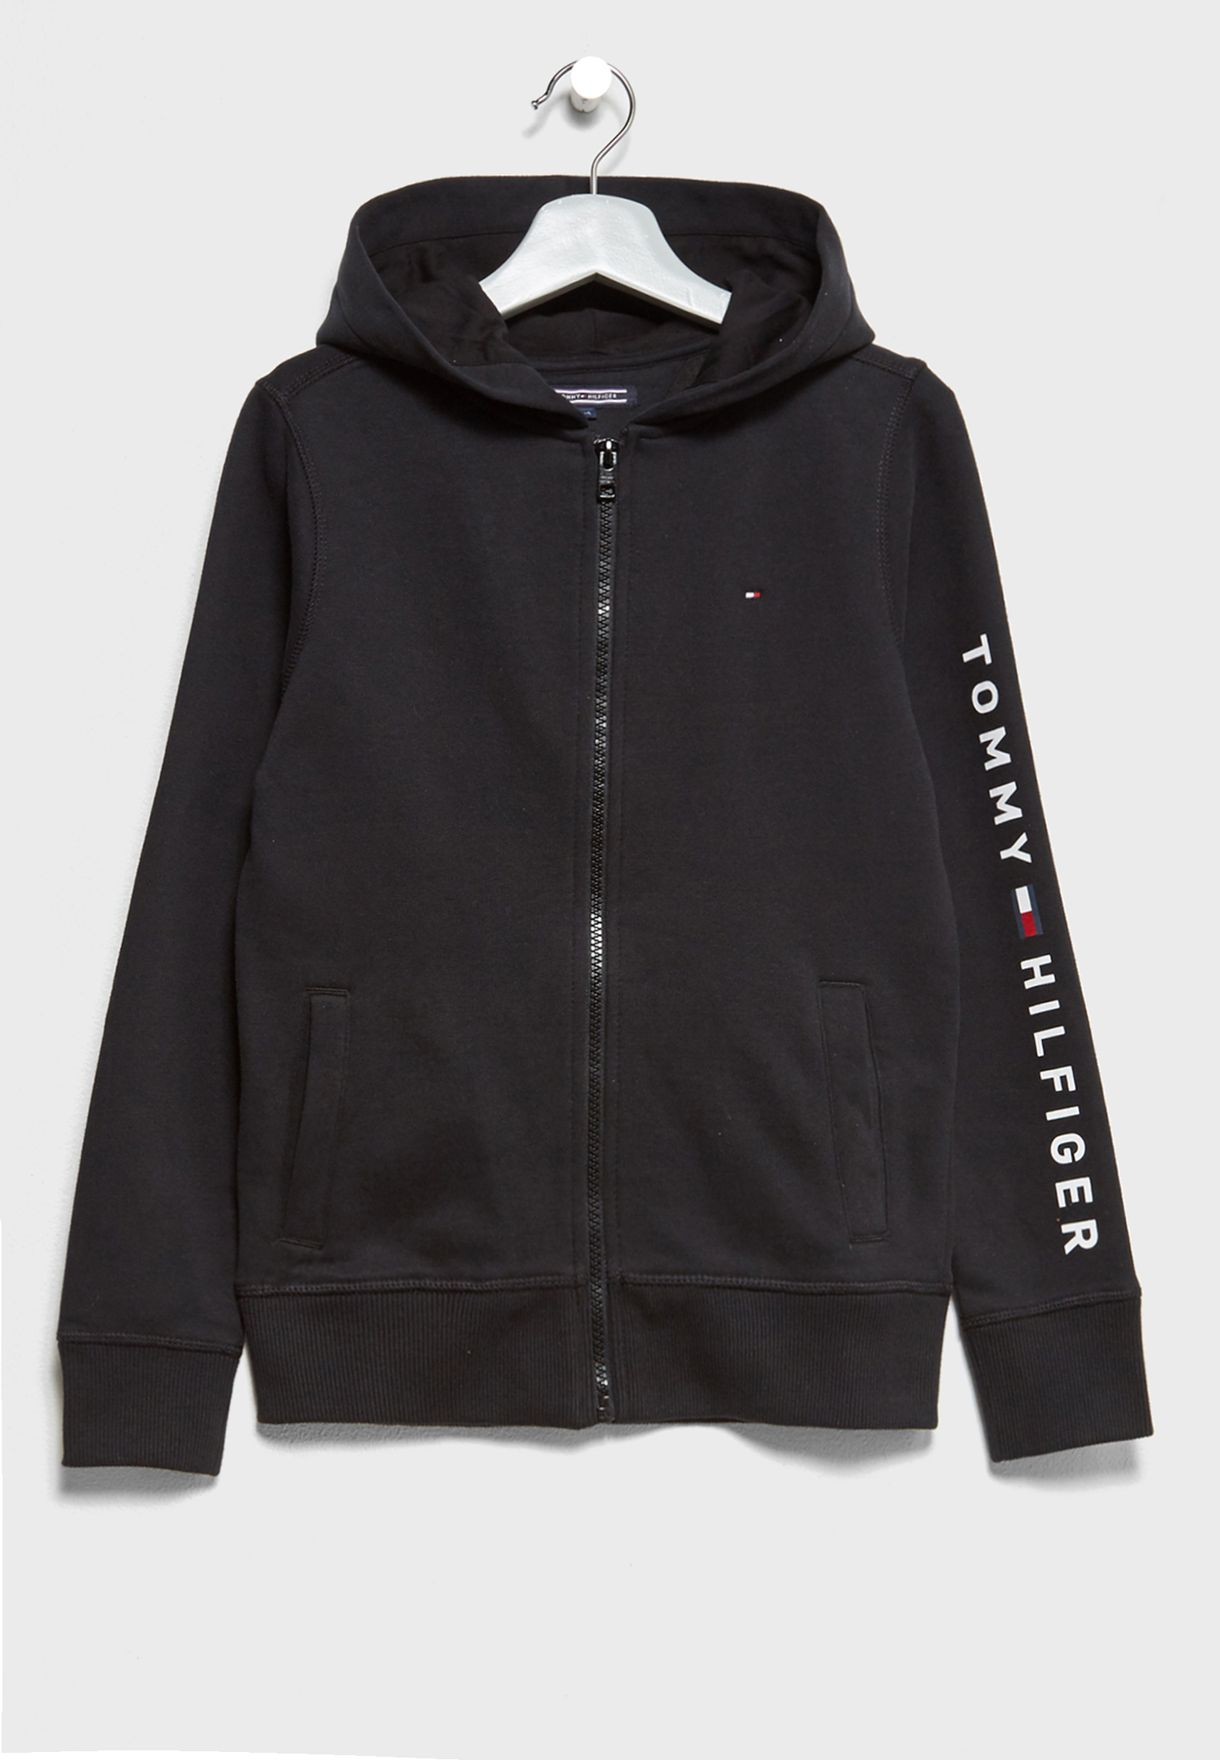 90e5592c Shop Tommy Hilfiger black Teen Zip Through Hoodie KB0KB03383 for ...